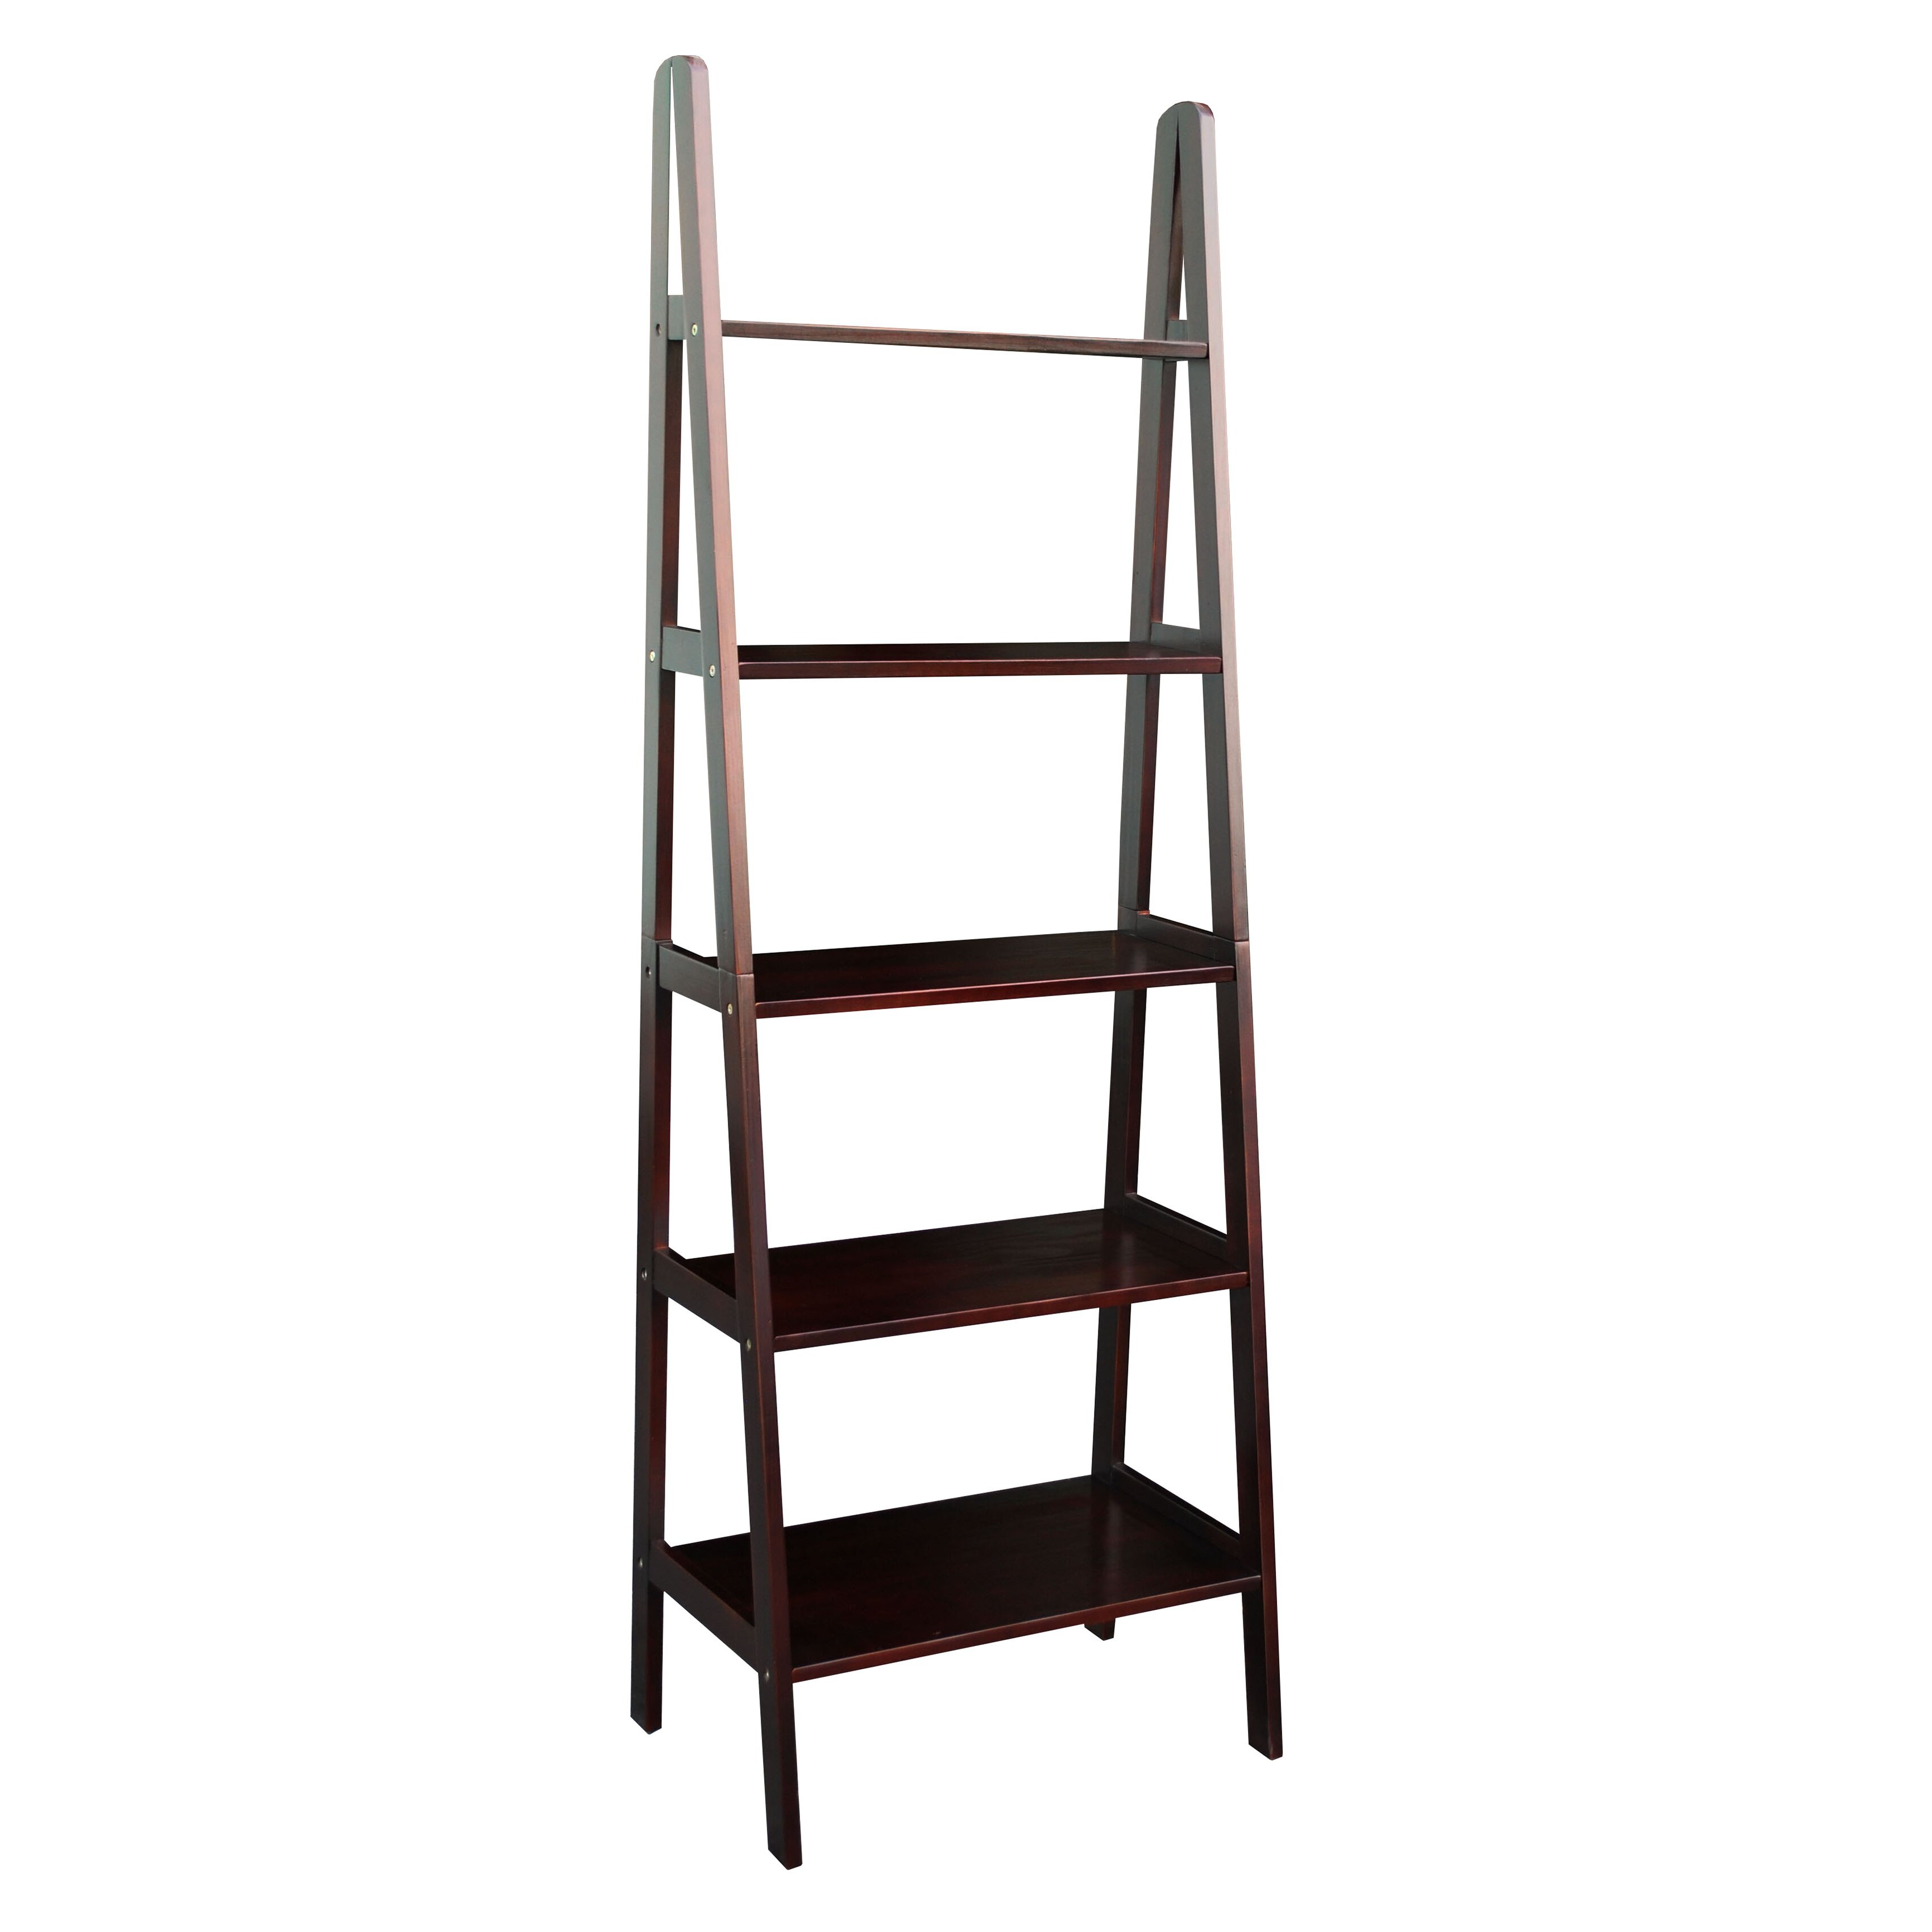 Andover mills channing 72 leaning bookcase reviews for Librero escalera